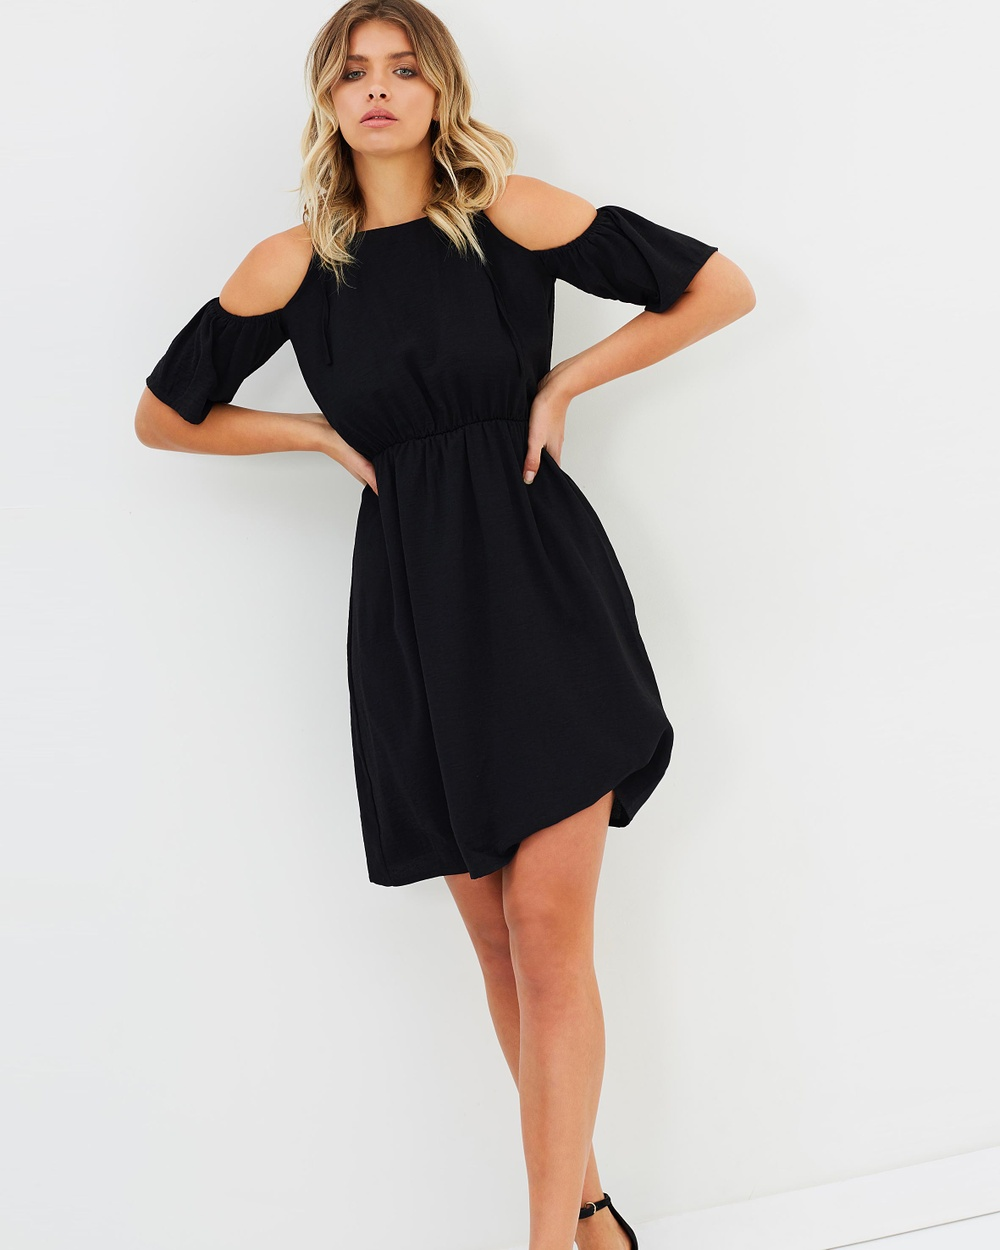 Atmos & Here ICONIC EXCLUSIVE Averi Cut Out Sleeve Dress Dresses Black ICONIC EXCLUSIVE Averi Cut Out Sleeve Dress